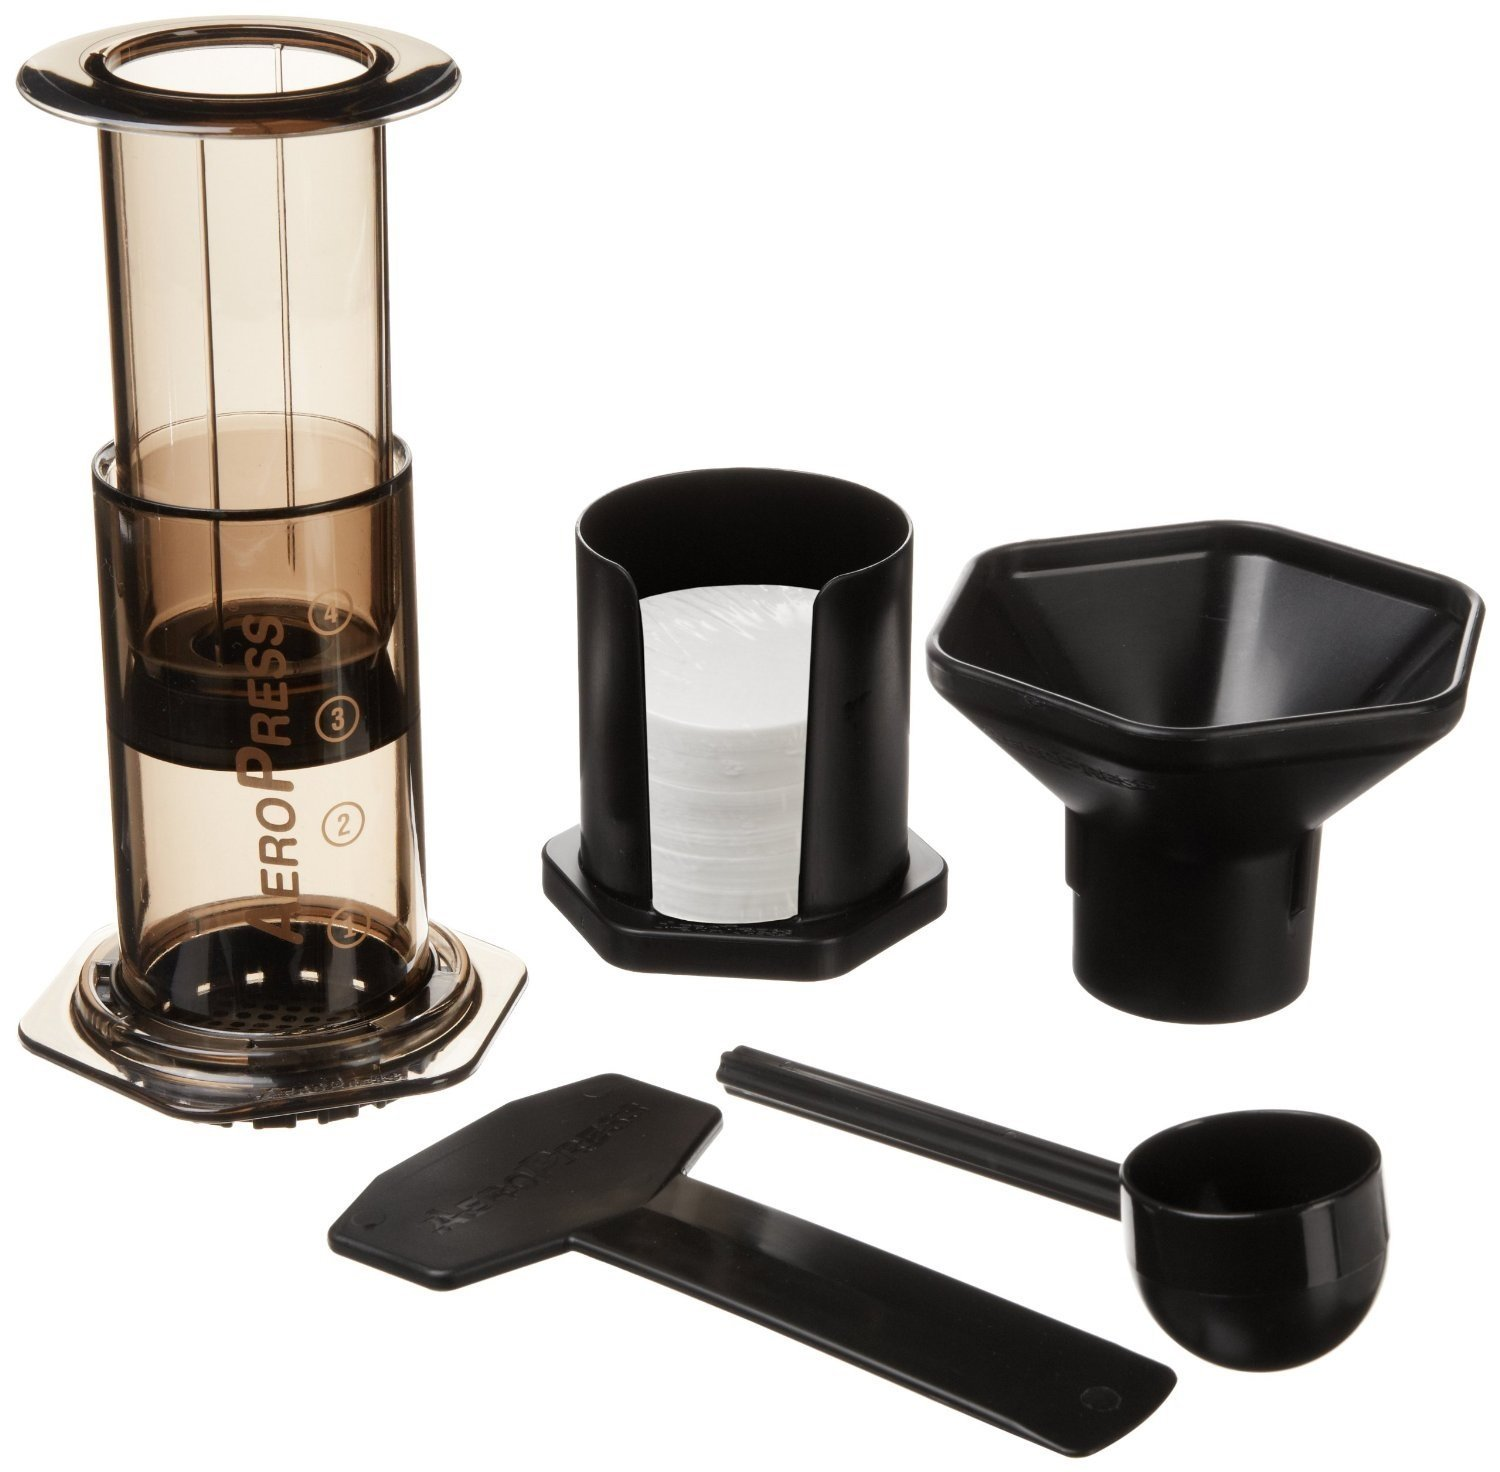 best travel coffee maker, best portable coffee maker, traveling coffee pot, traveling espresso maker, best portable coffee makers, compact travel coffee maker, best portable espresso maker, travel drip coffee maker, portable coffee brewer, portable coffee maker